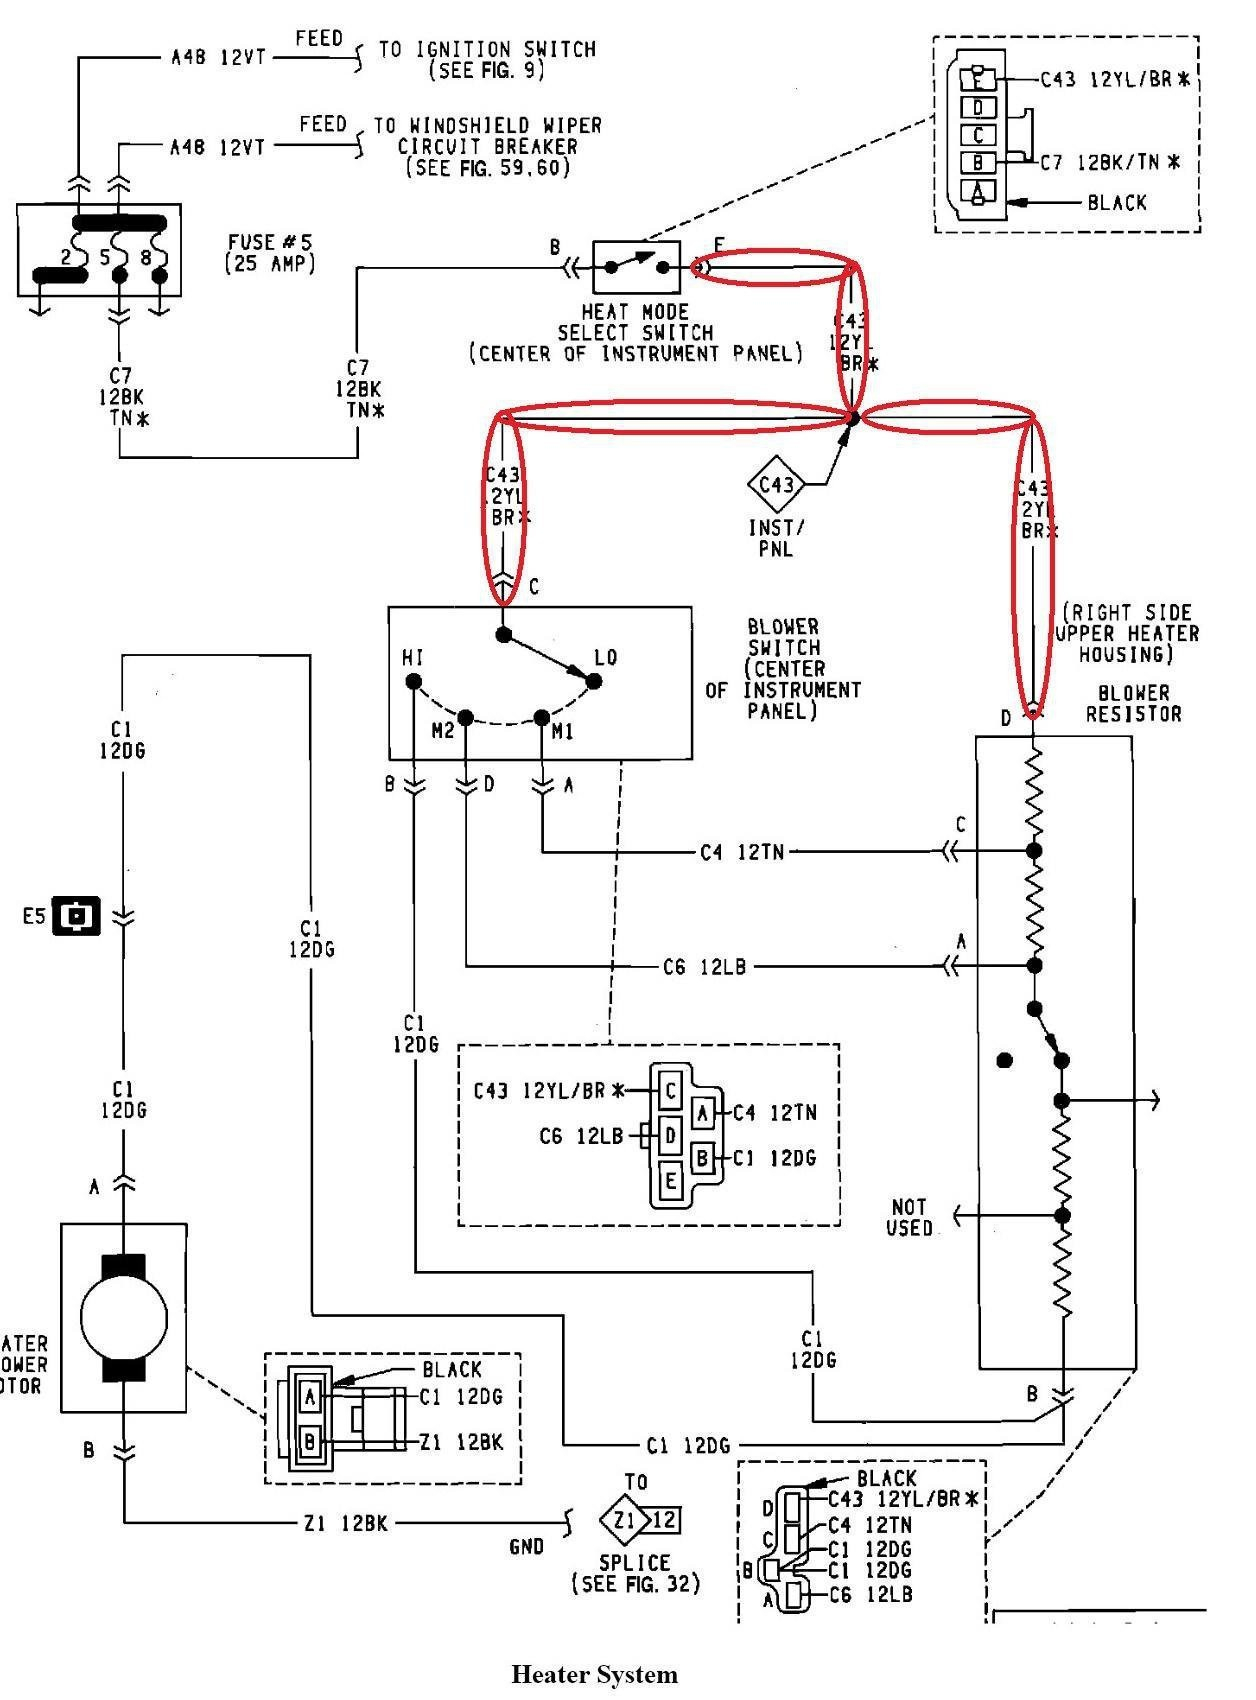 [DIAGRAM_5LK]  DIAGRAM] 1997 Ezgo 36v Golf Cart Wiring Diagram FULL Version HD Quality Wiring  Diagram - ECOLOGYDIAGRAMS.BELLEILMERSION.FR | 1997 Ez Go Txt Wiring Diagram |  | ecologydiagrams.belleilmersion.fr